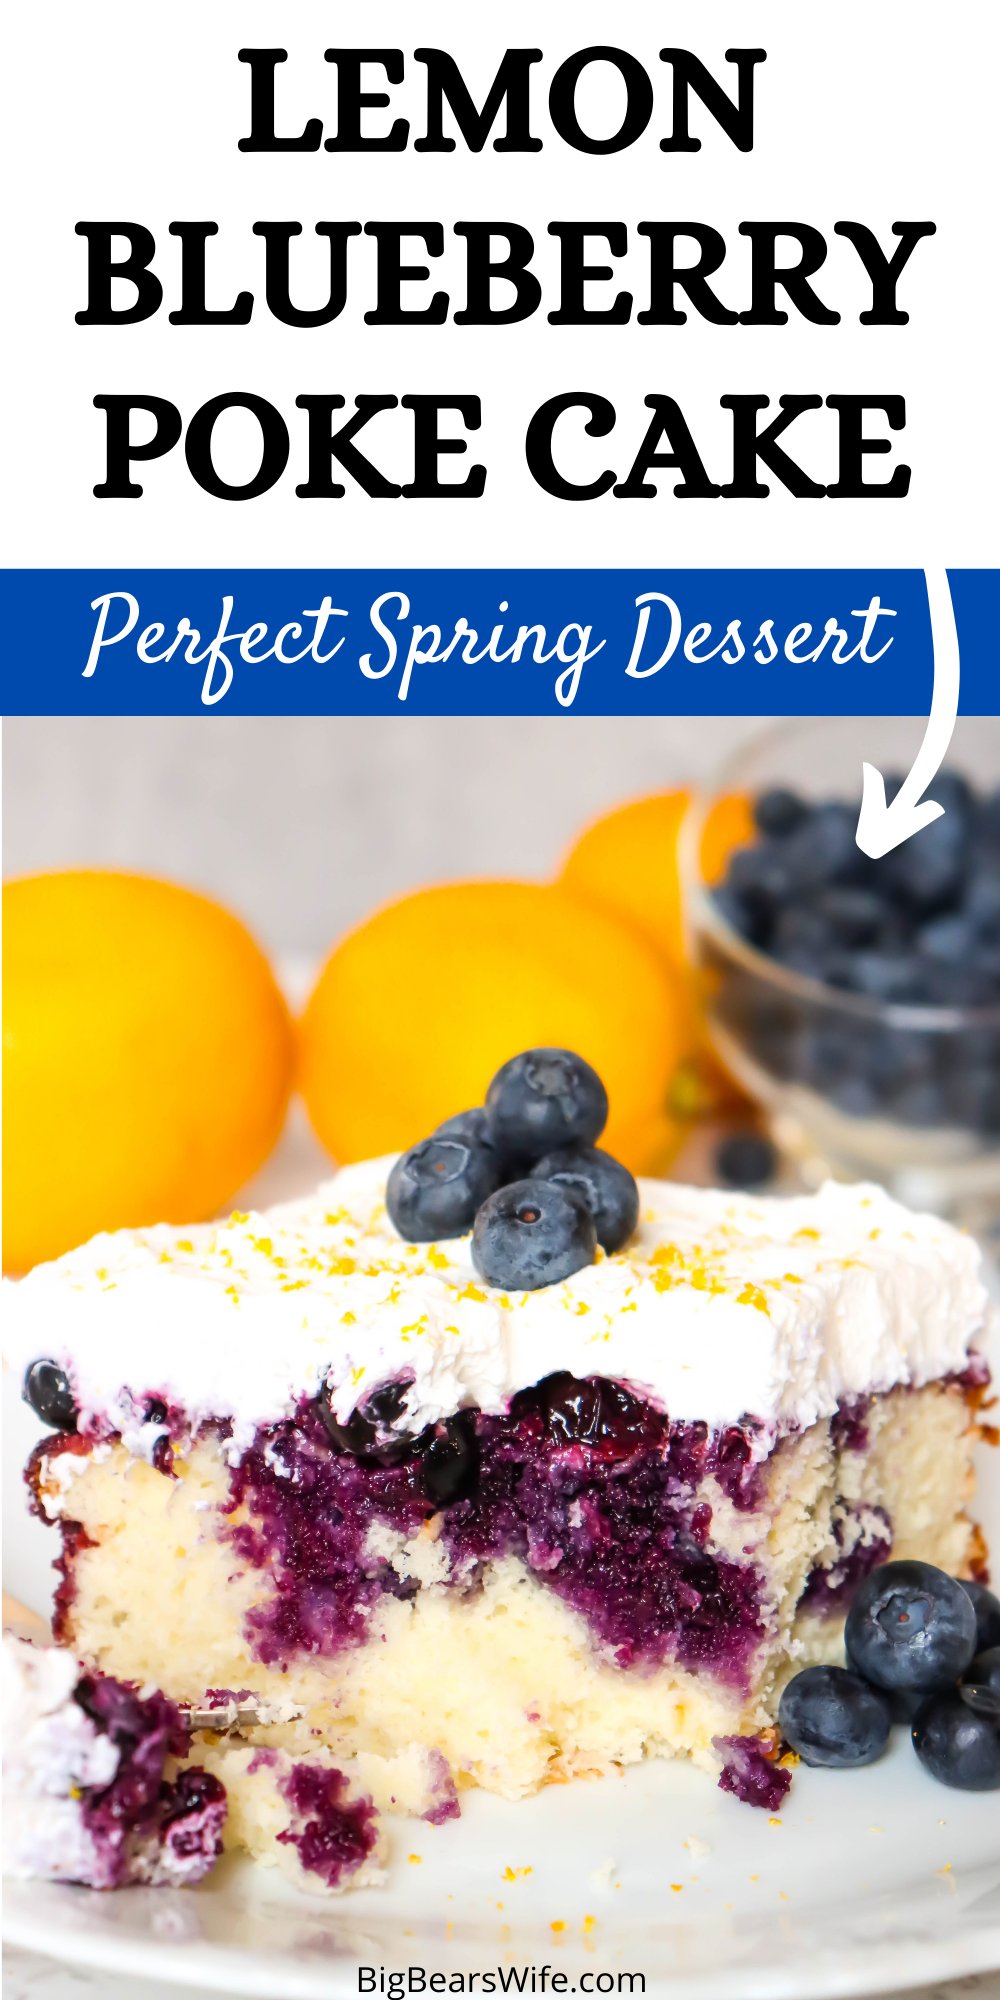 Lemon Blueberry Poke Cake - Welcome spring with this light and fresh lemon poke cake that is topped with a homemade fresh blueberry sauce and lemon crème chantilly!  via @bigbearswife